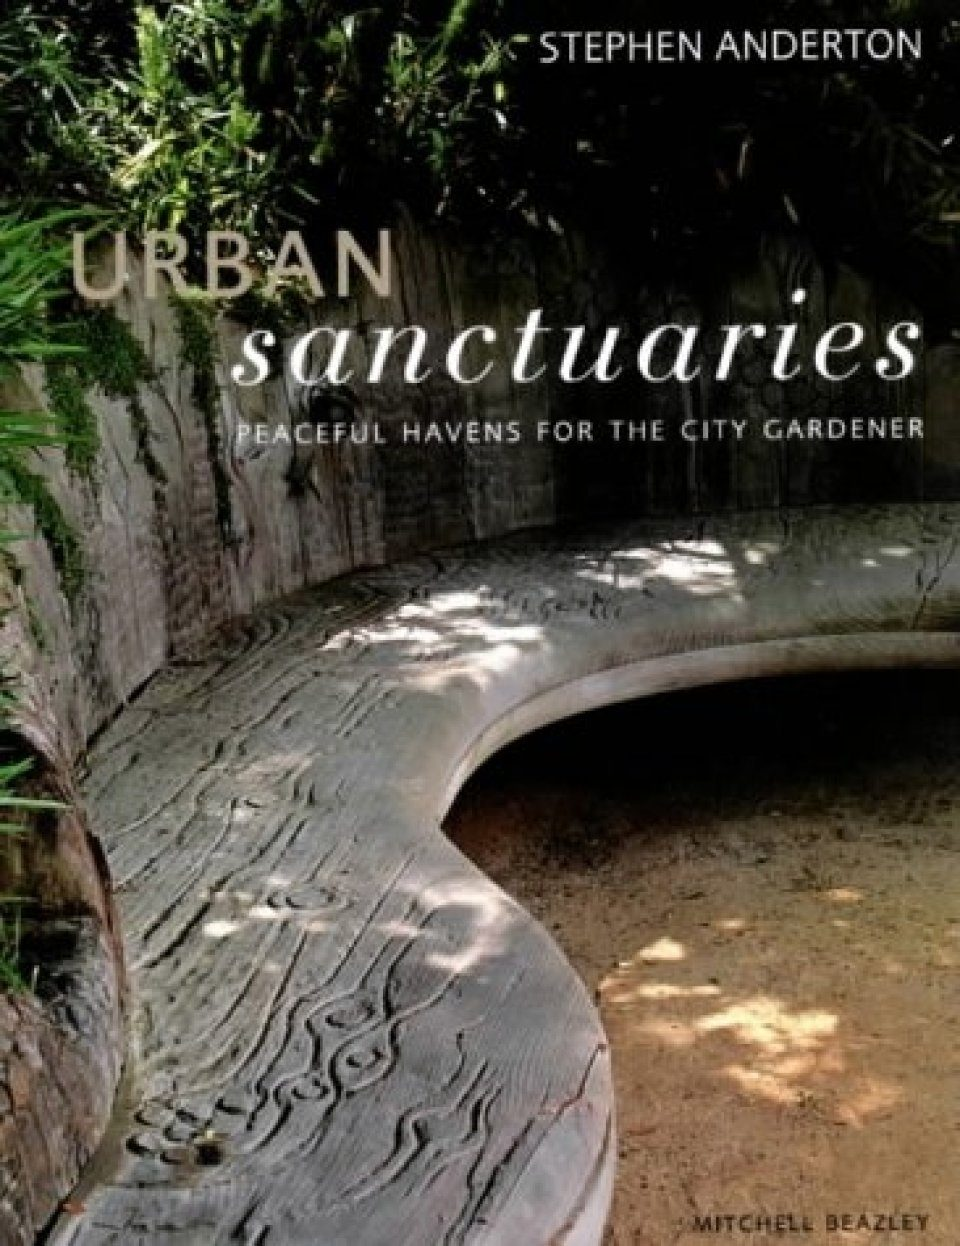 Urban Sanctuaries